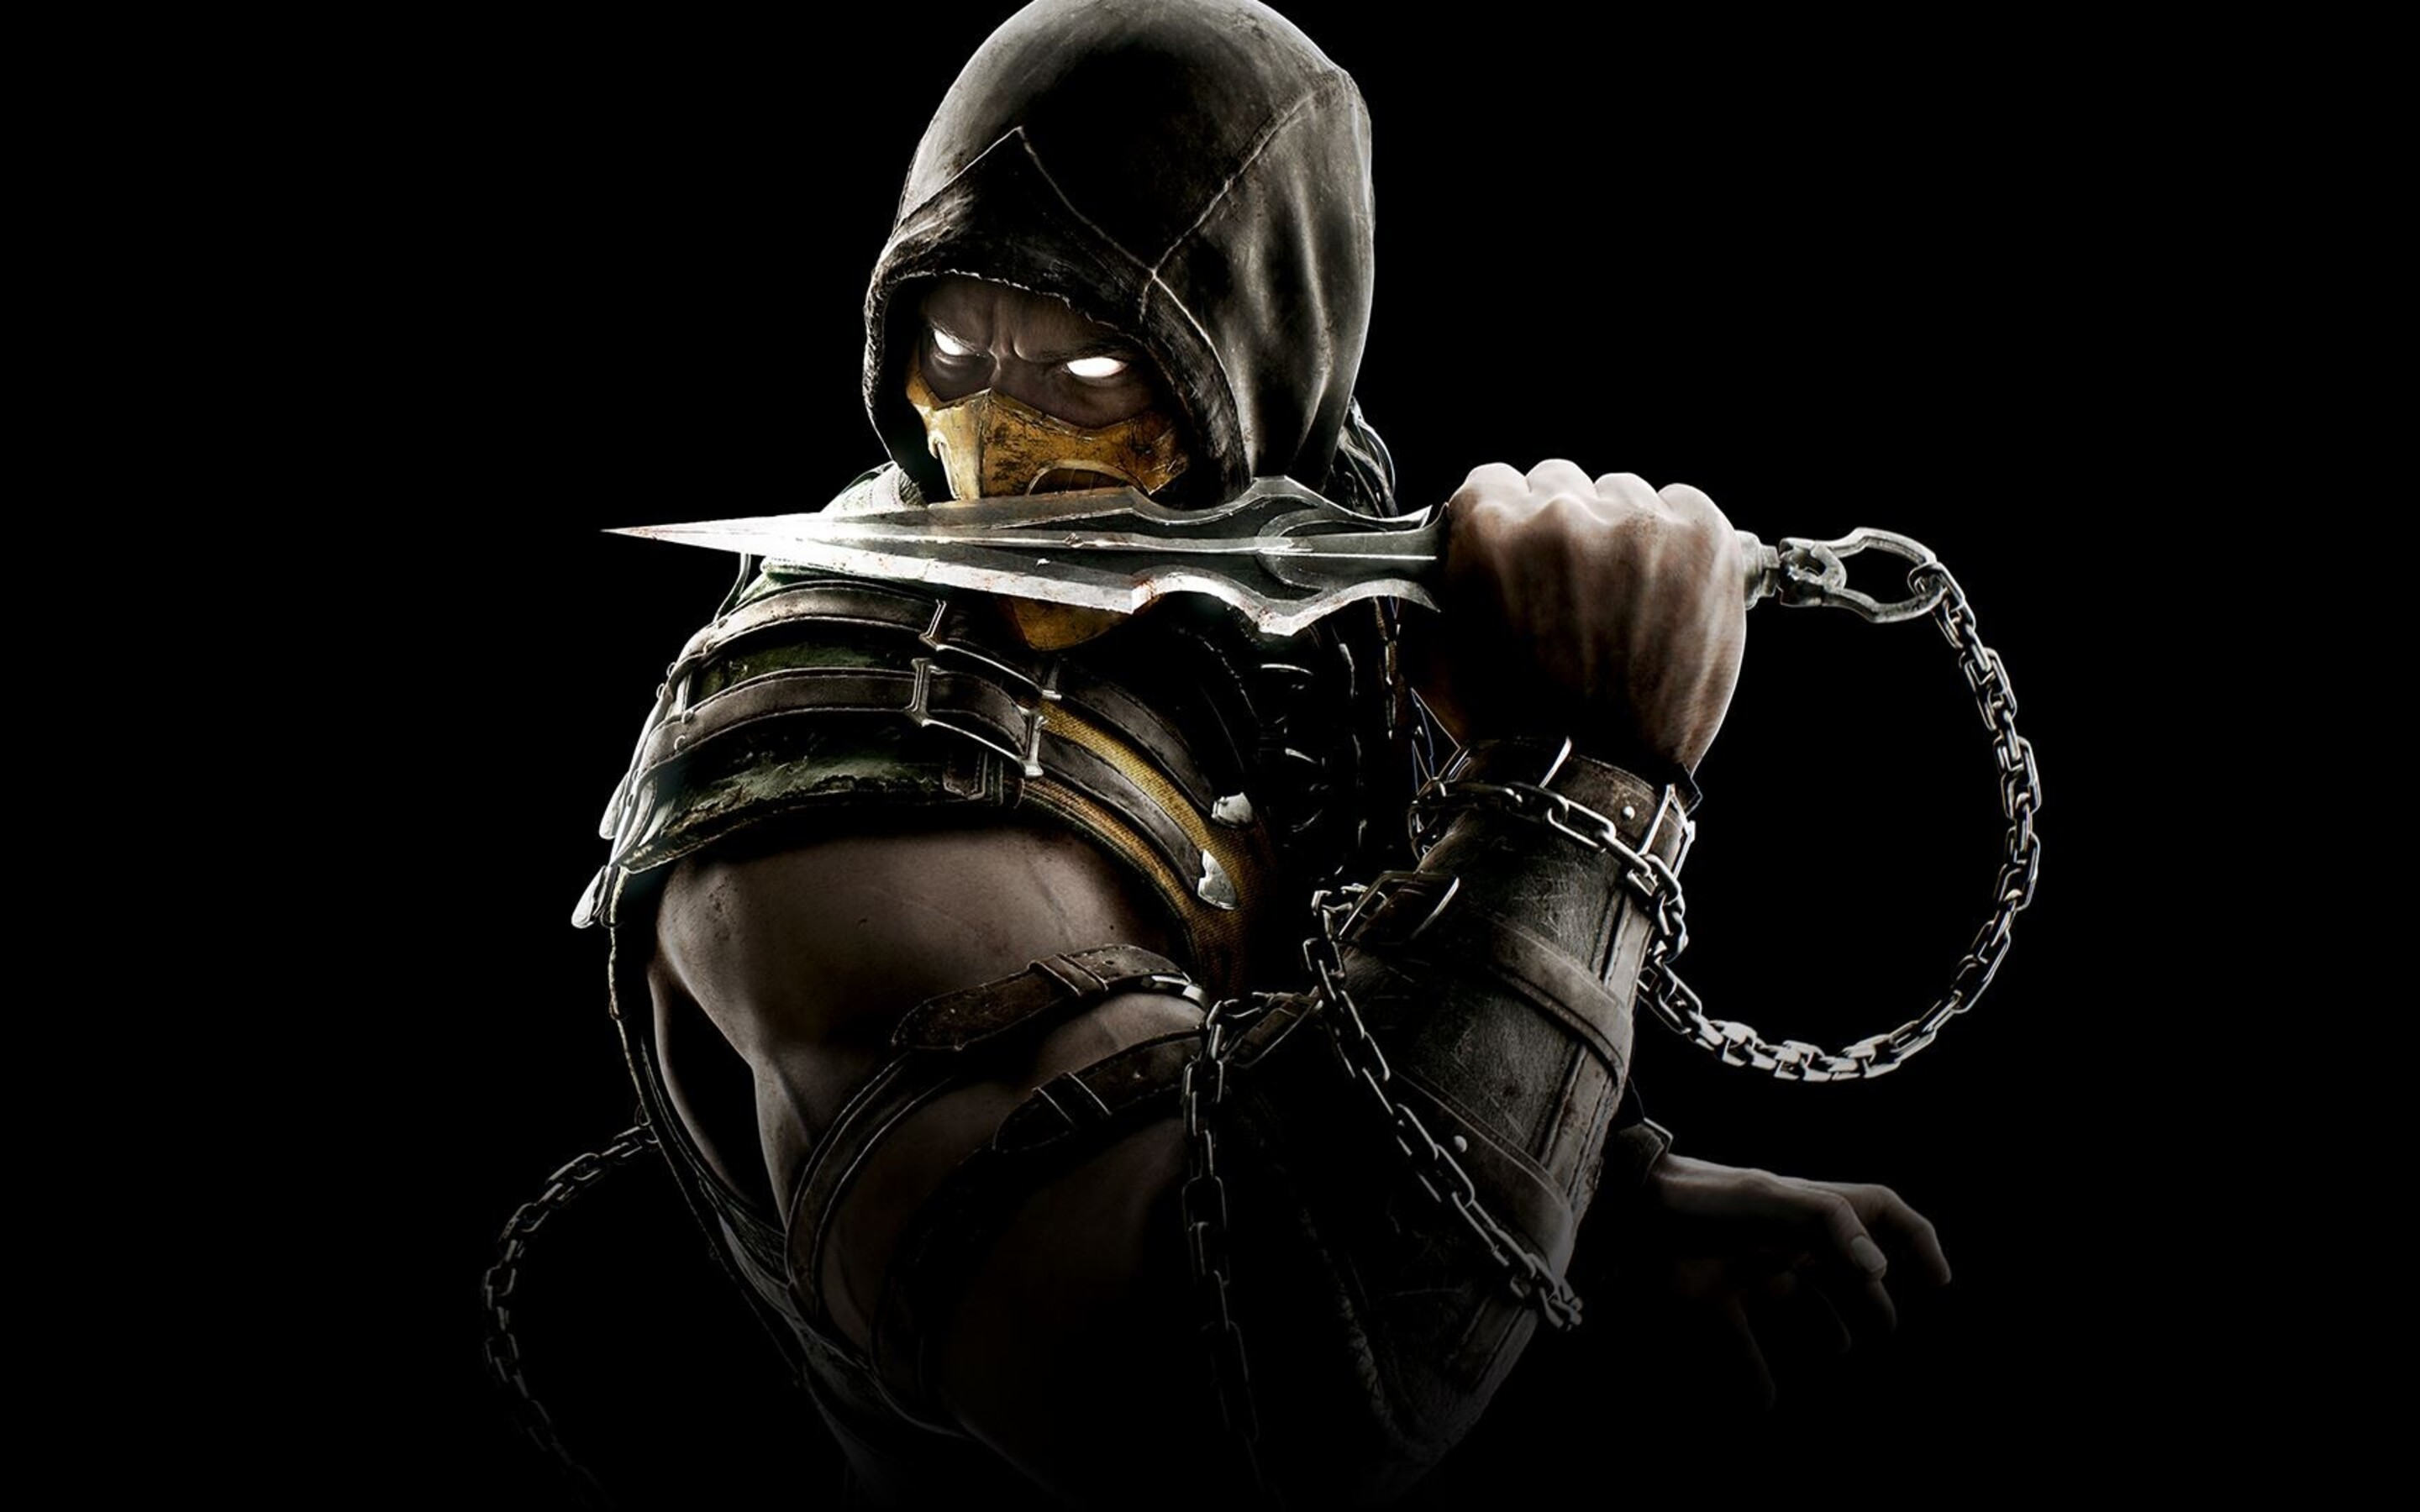 2880x1800 Scorpion Mortal Kombat Macbook Pro Retina Hd 4k Wallpapers